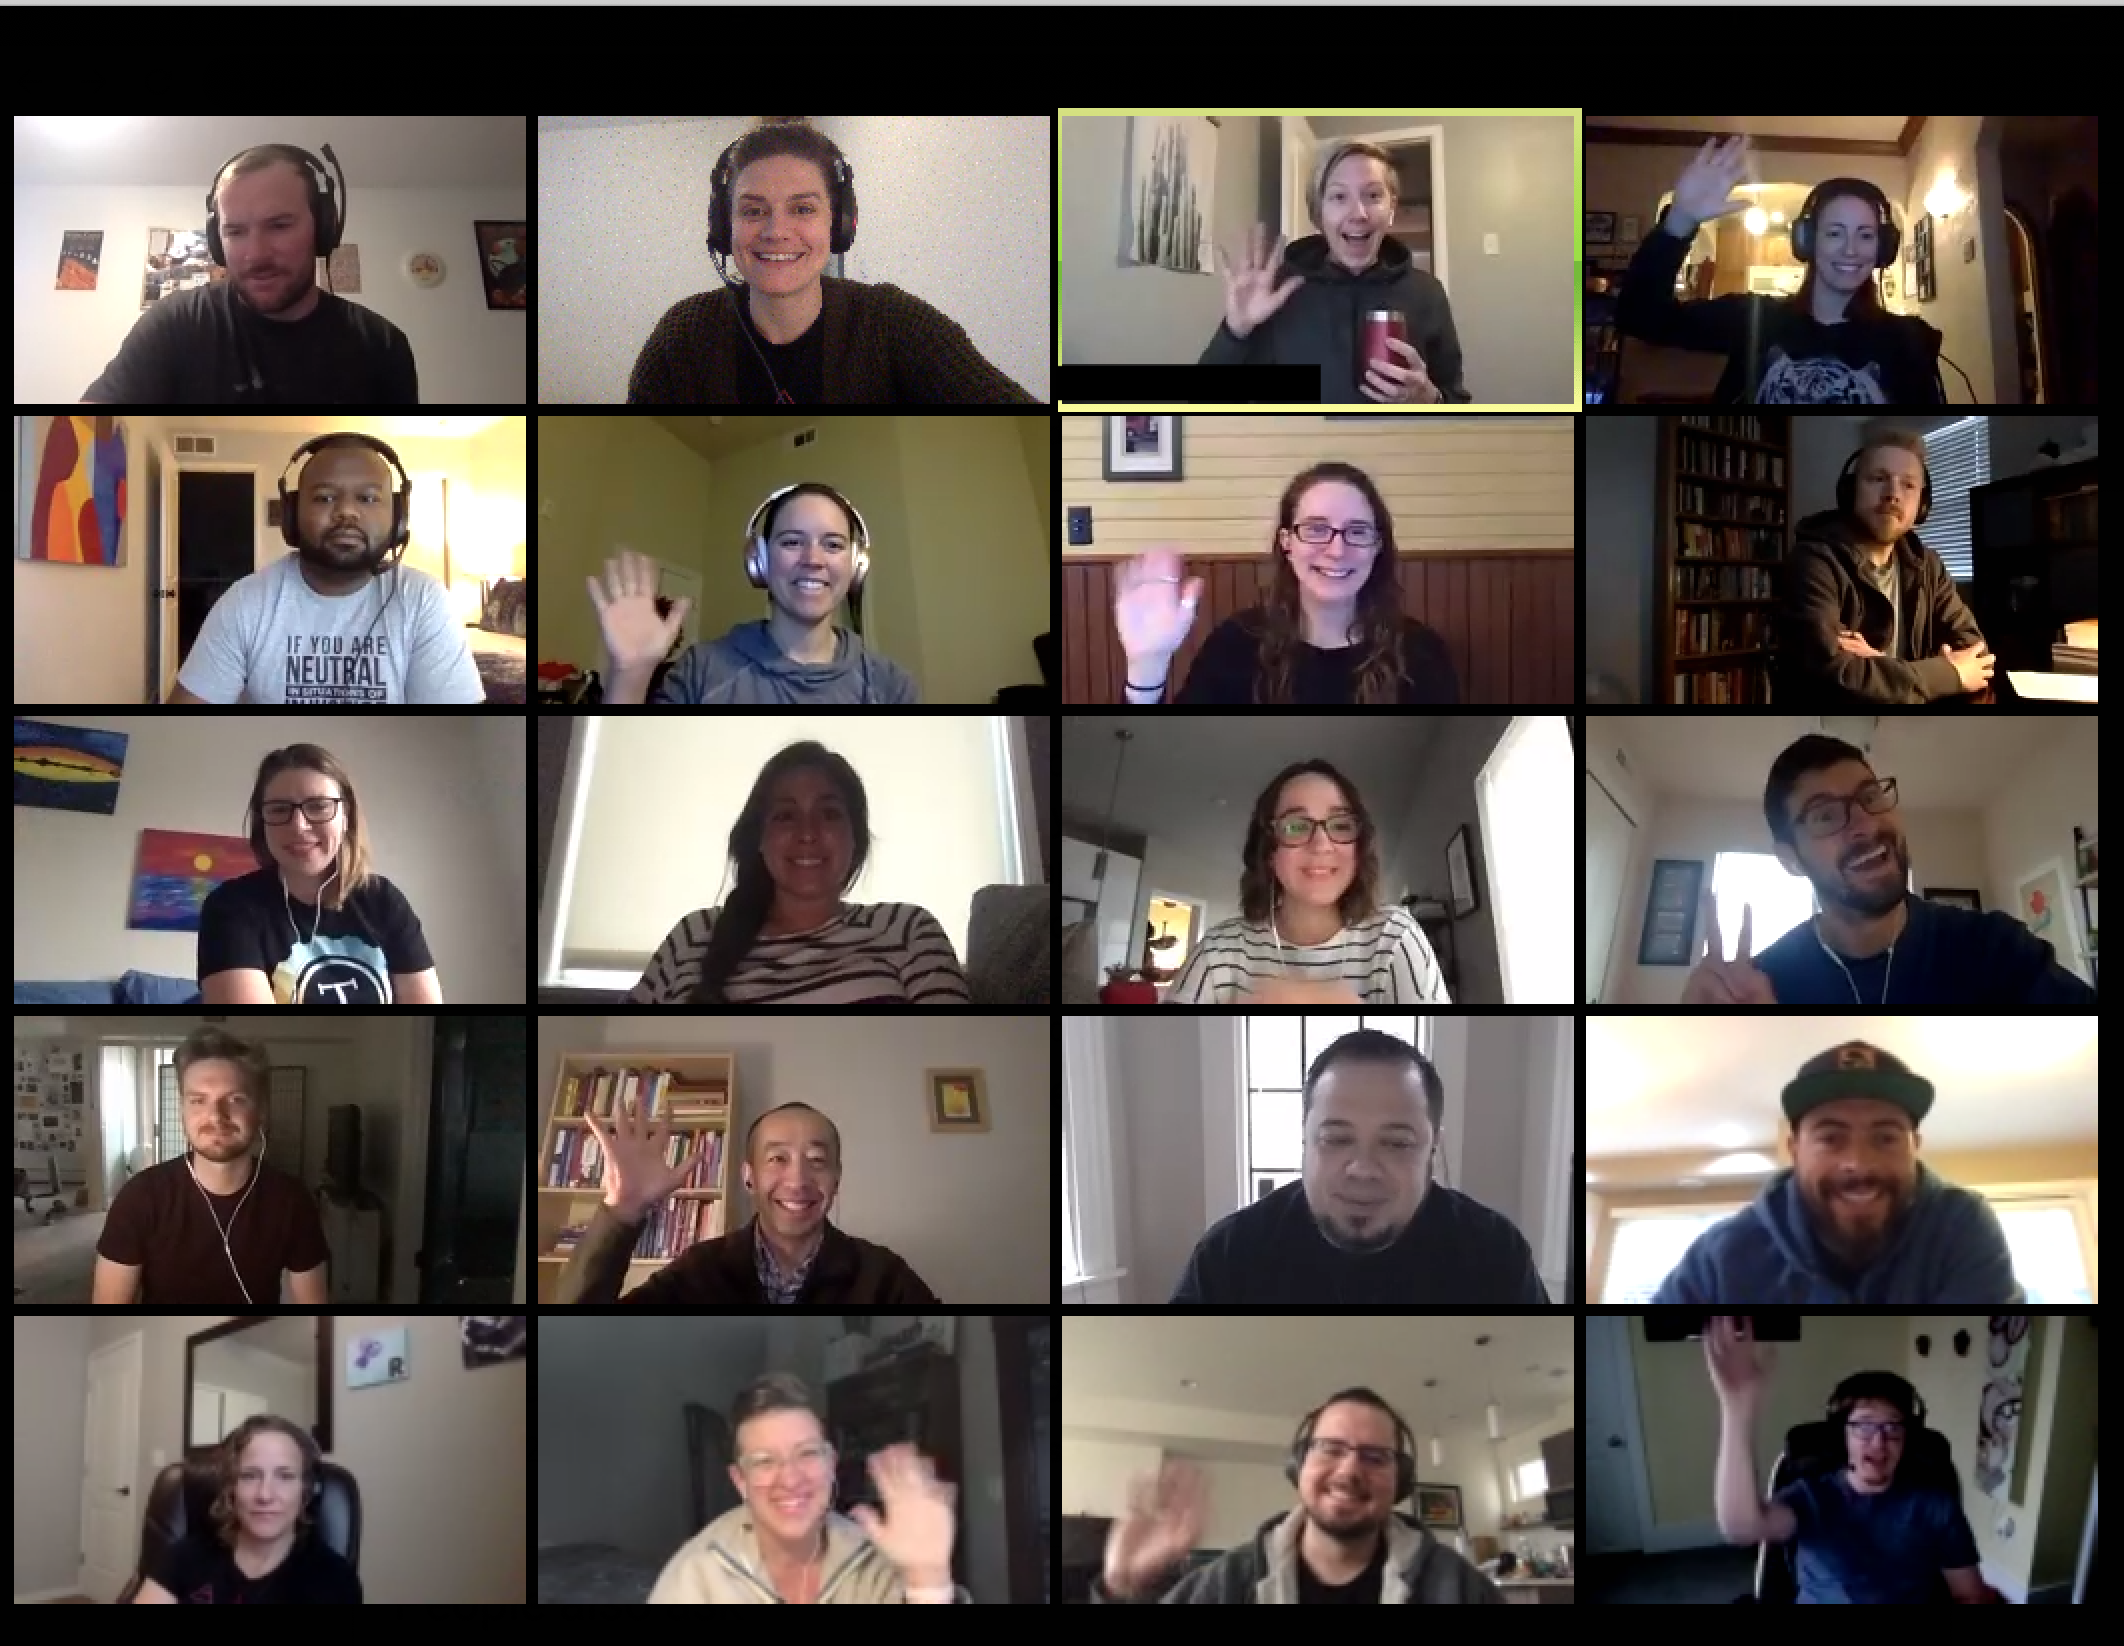 Grid view of people smiling and waving from their laptop camera.